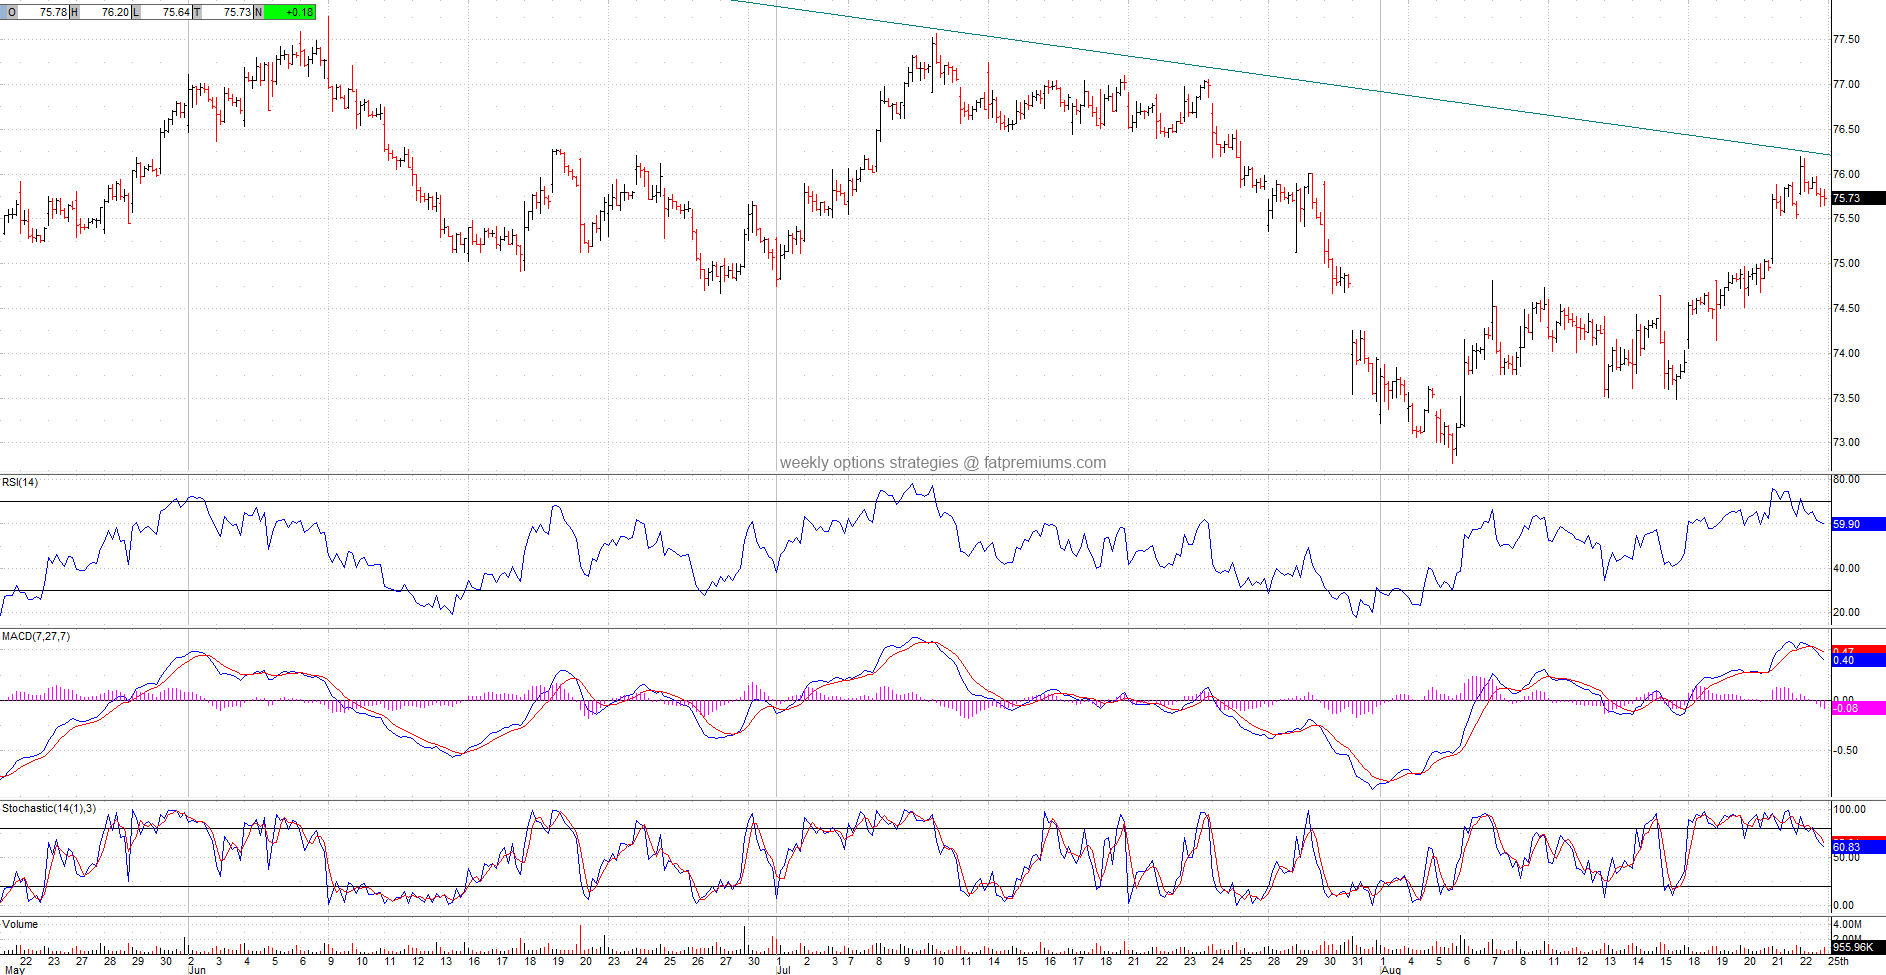 Wal-Mart Stores (NYSE:WMT) Hourly Chart (2014-08-23) Bearish